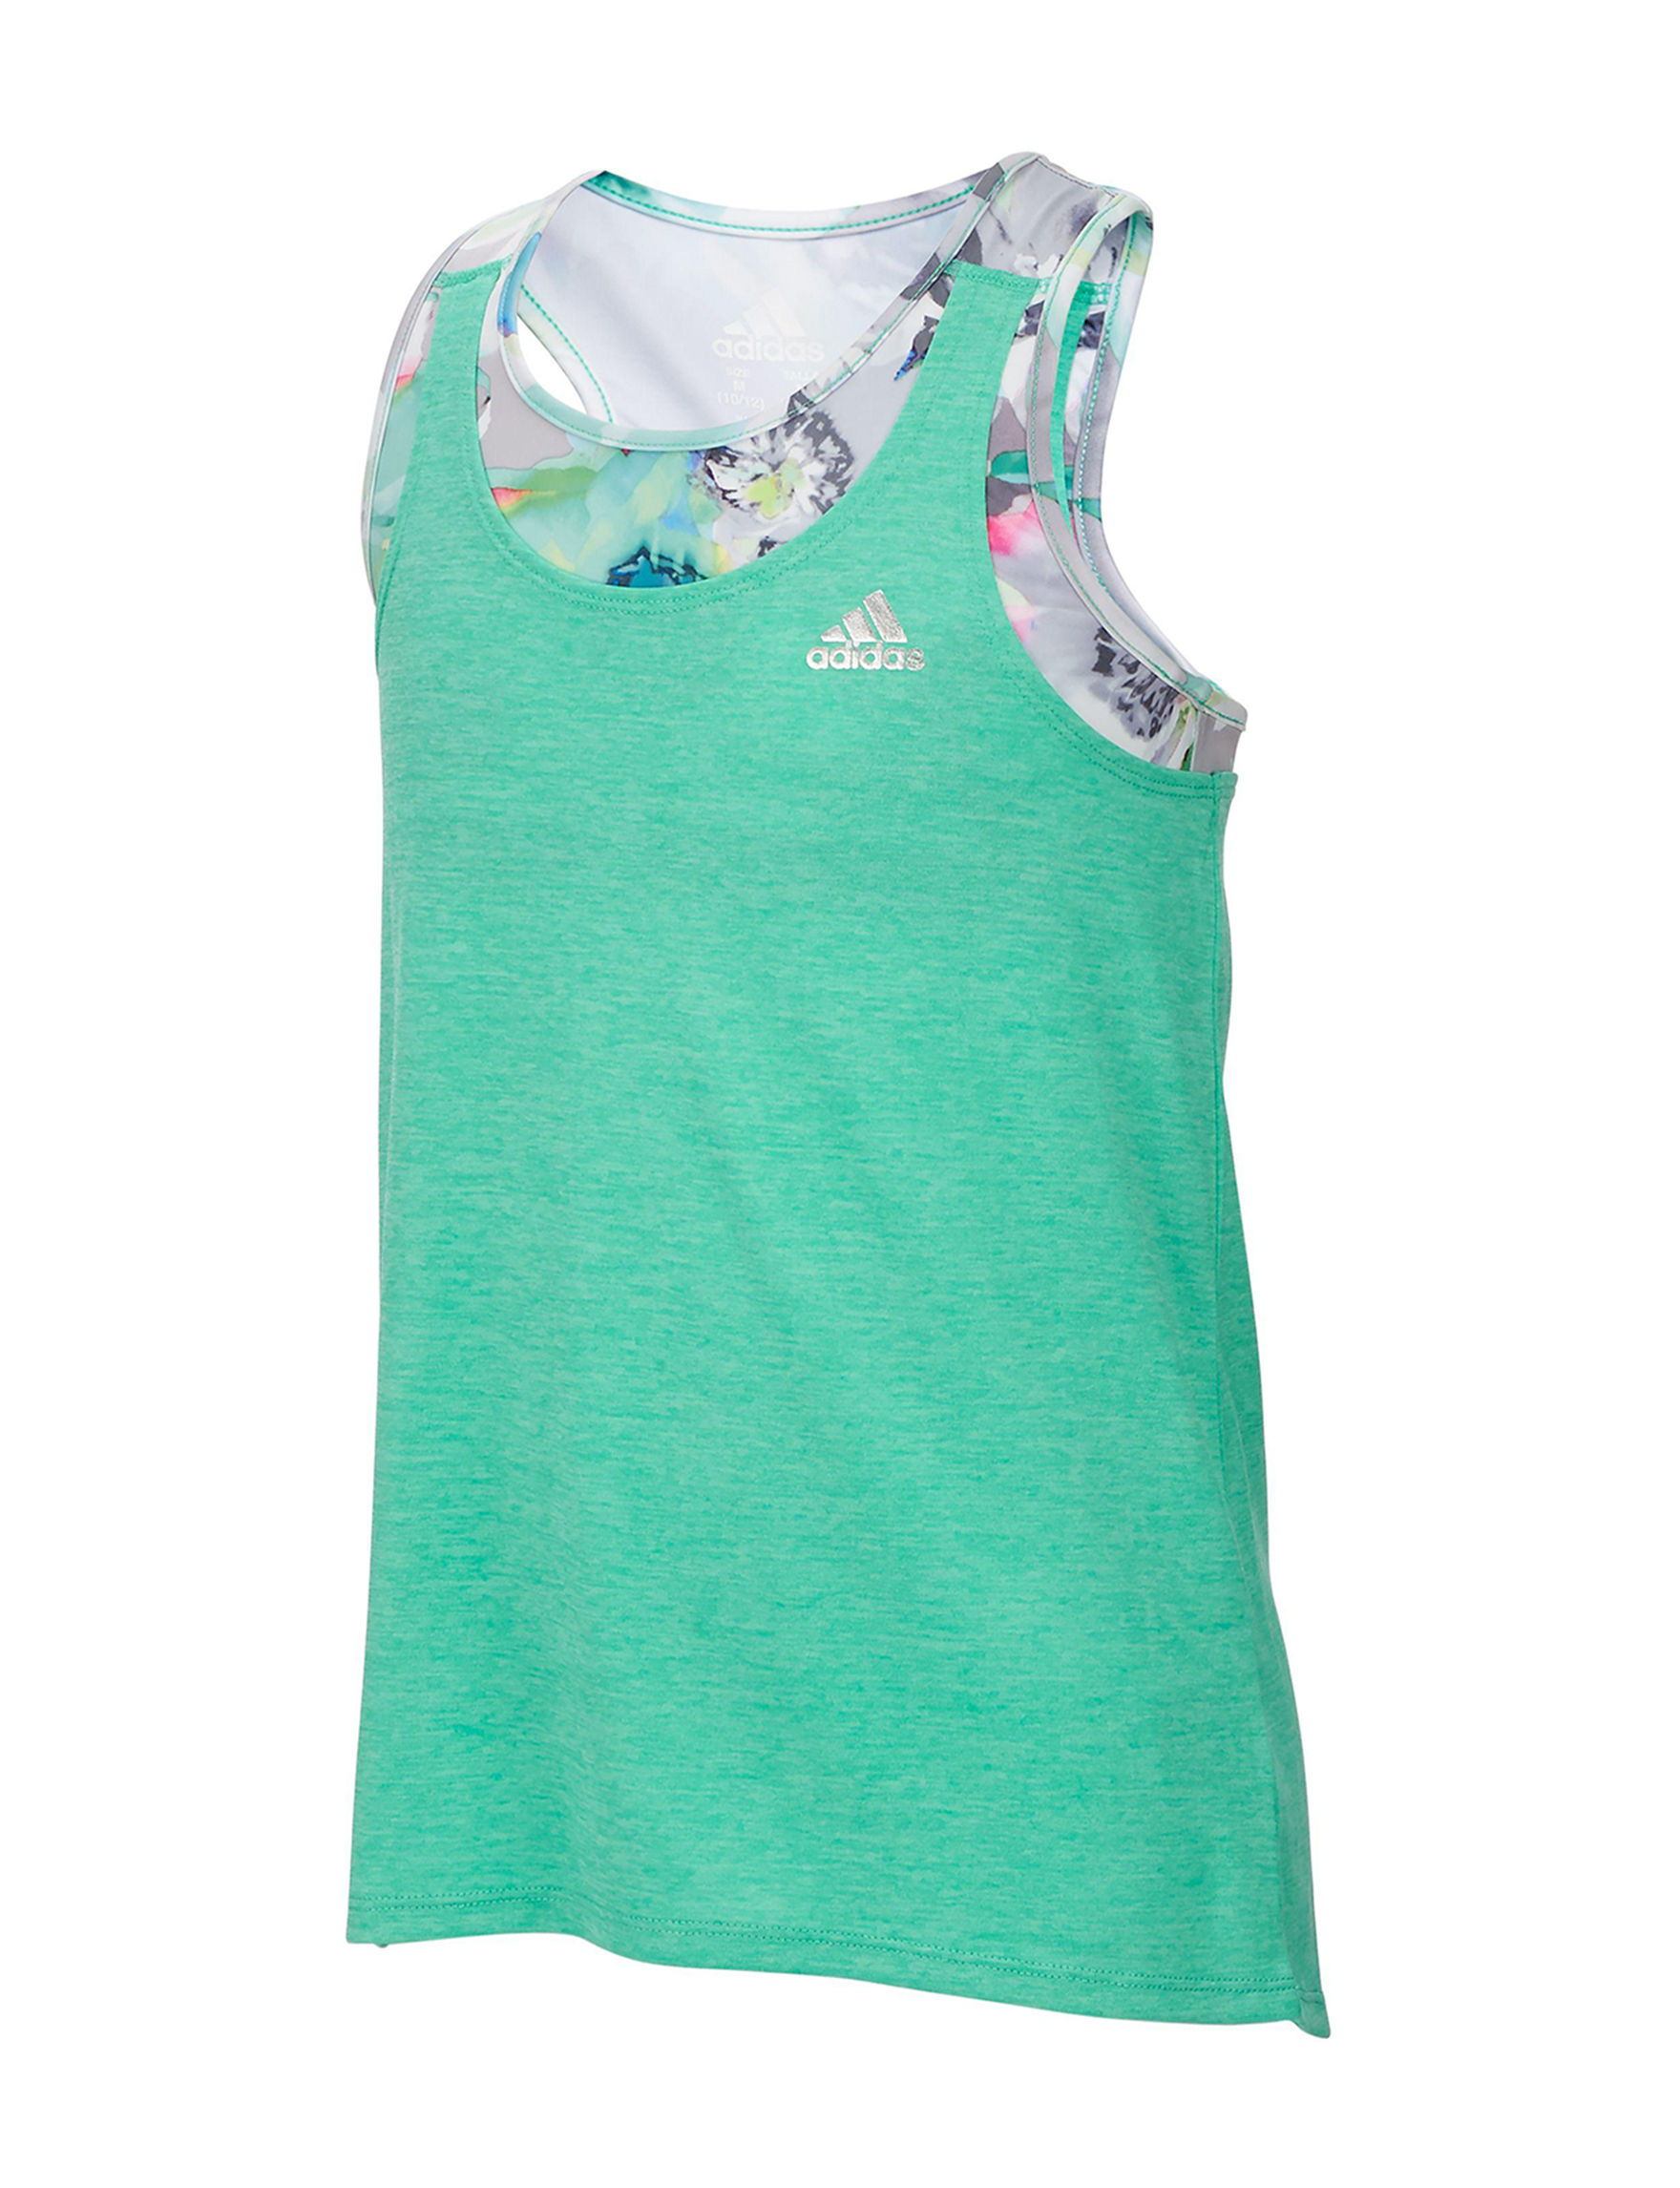 Adidas Green Tees & Tanks